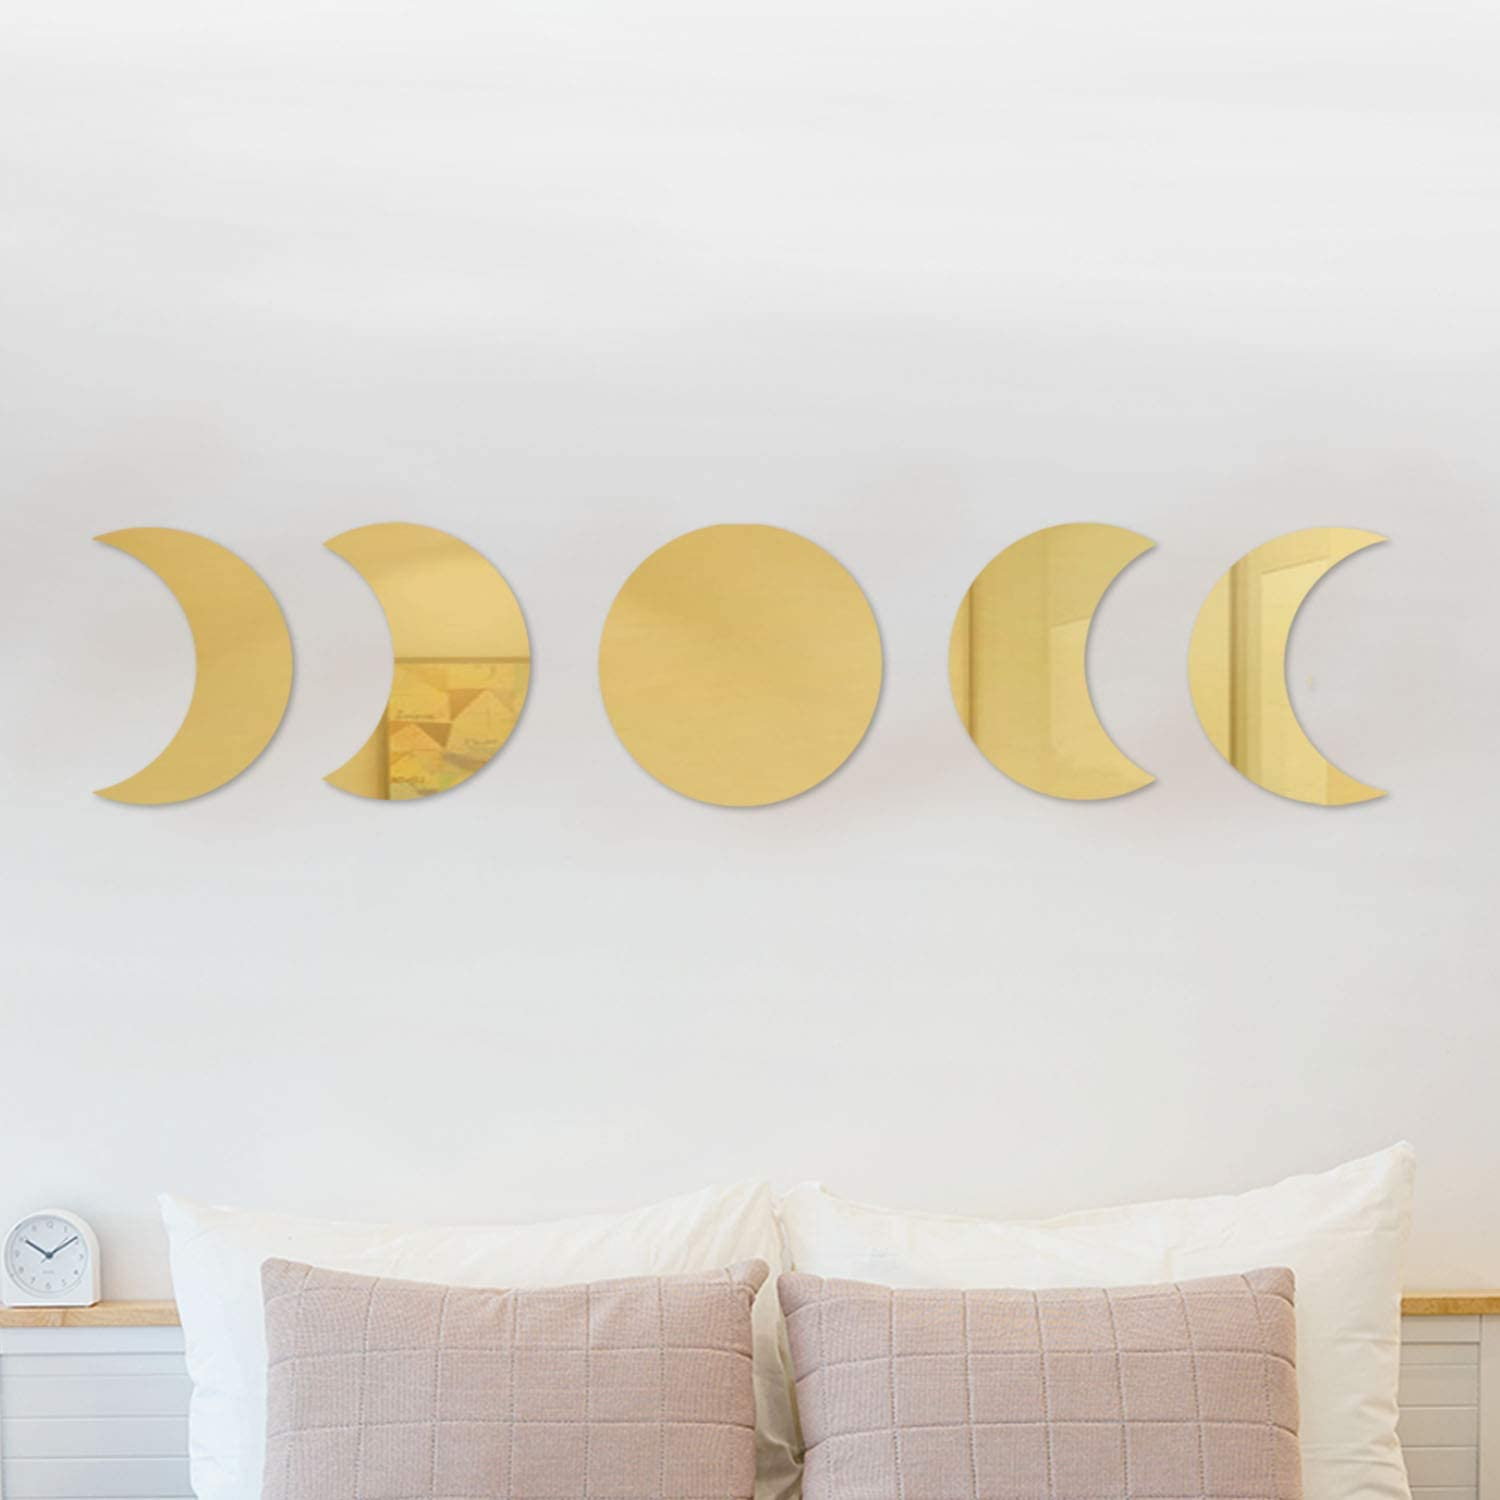 RTMISA Moon Phases Wall Decor Boho Wall Mirror Stickers Art Decorations for Nursery Living Room Bedroom Lobby Home Office - Gold